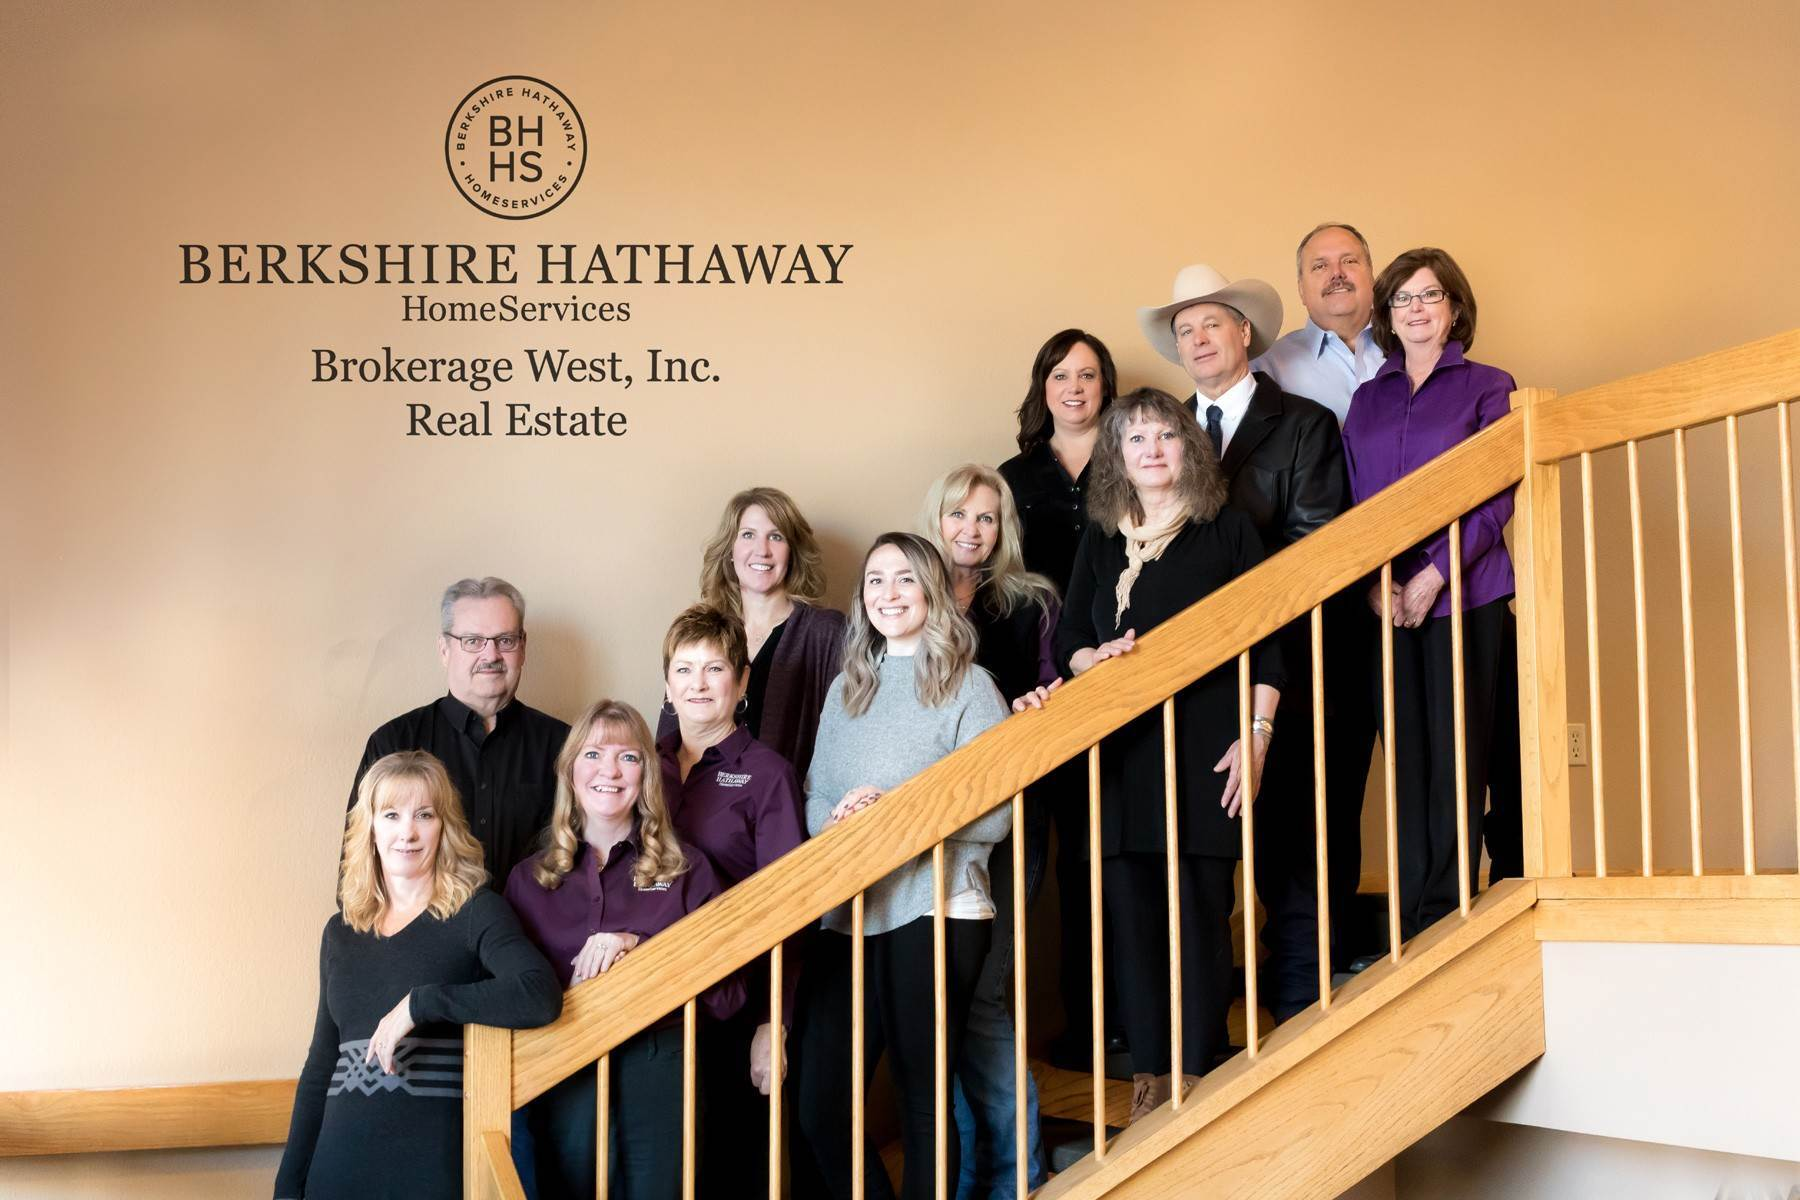 Office Berkshire Hathaway HomeServices Brokerage West, Inc Photo